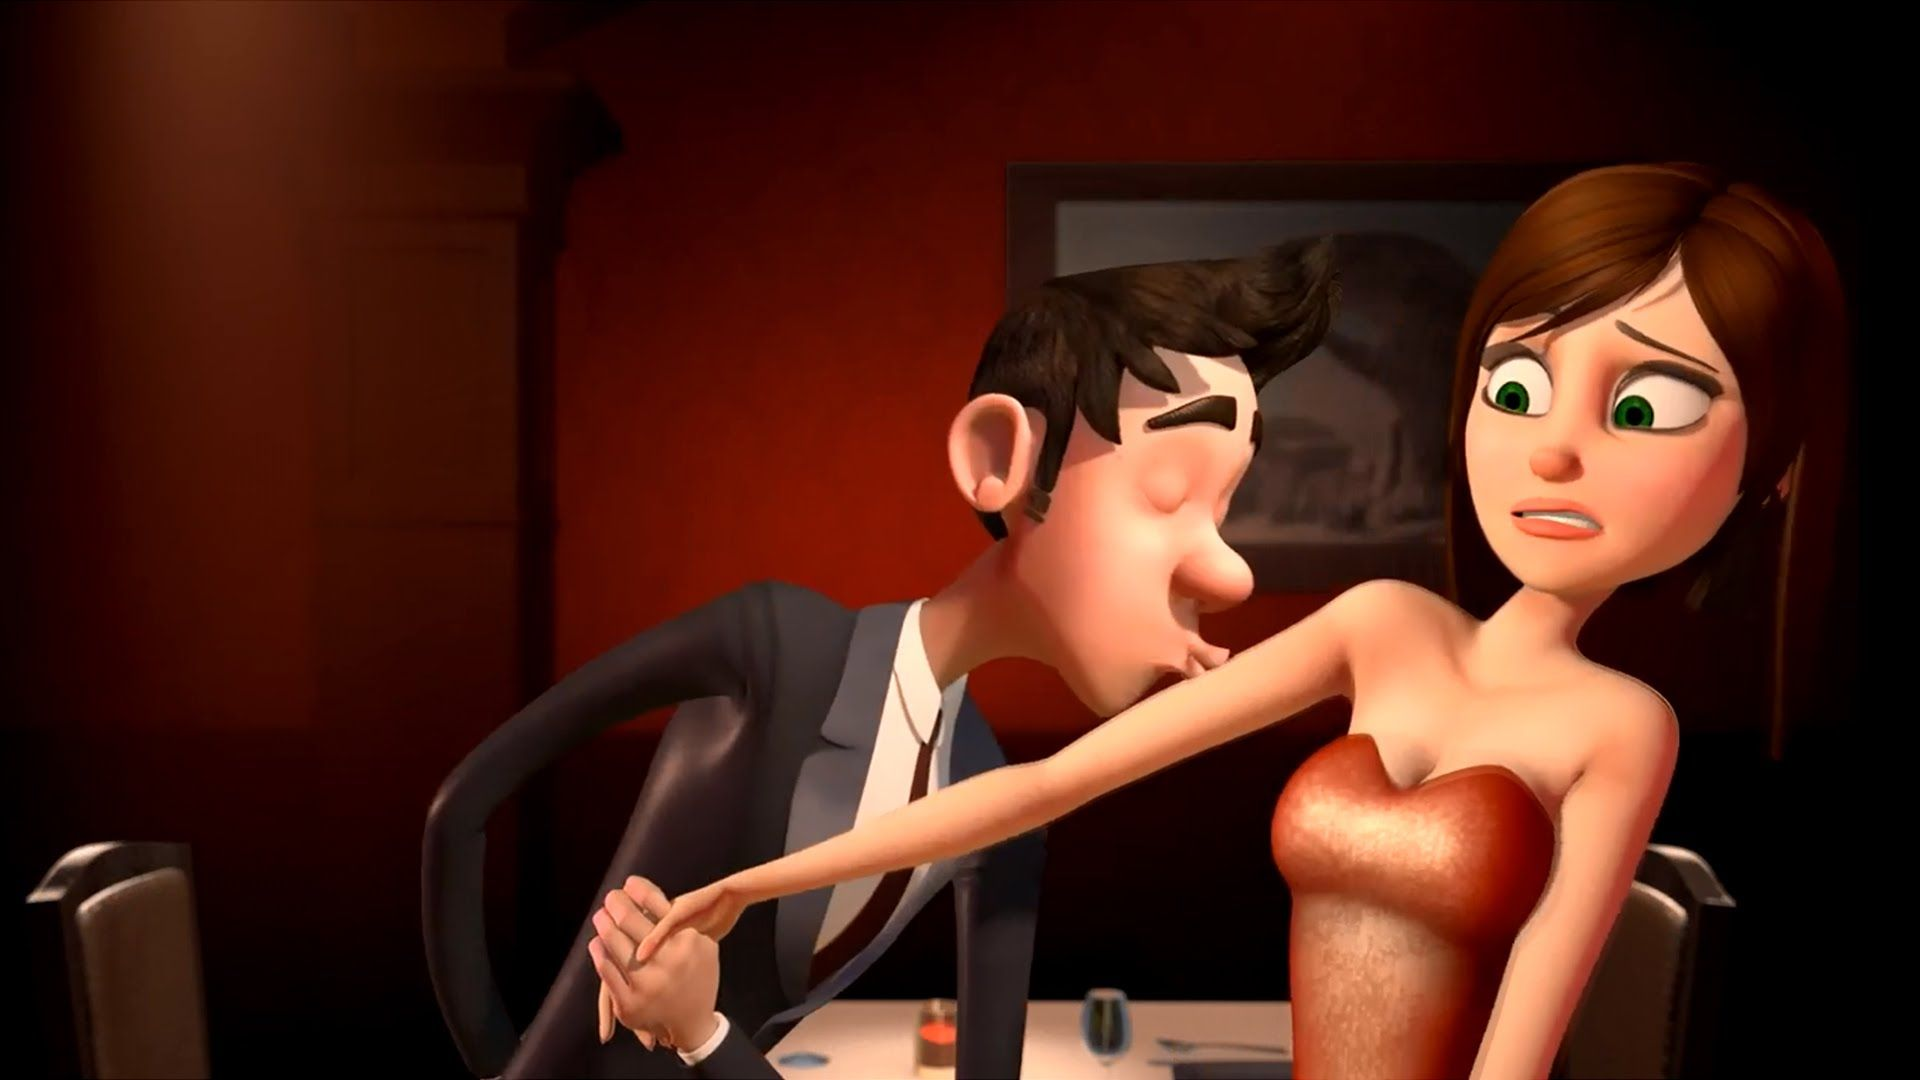 Please Watch This Funny Love Story Brief Film HD CGI Animated Toon